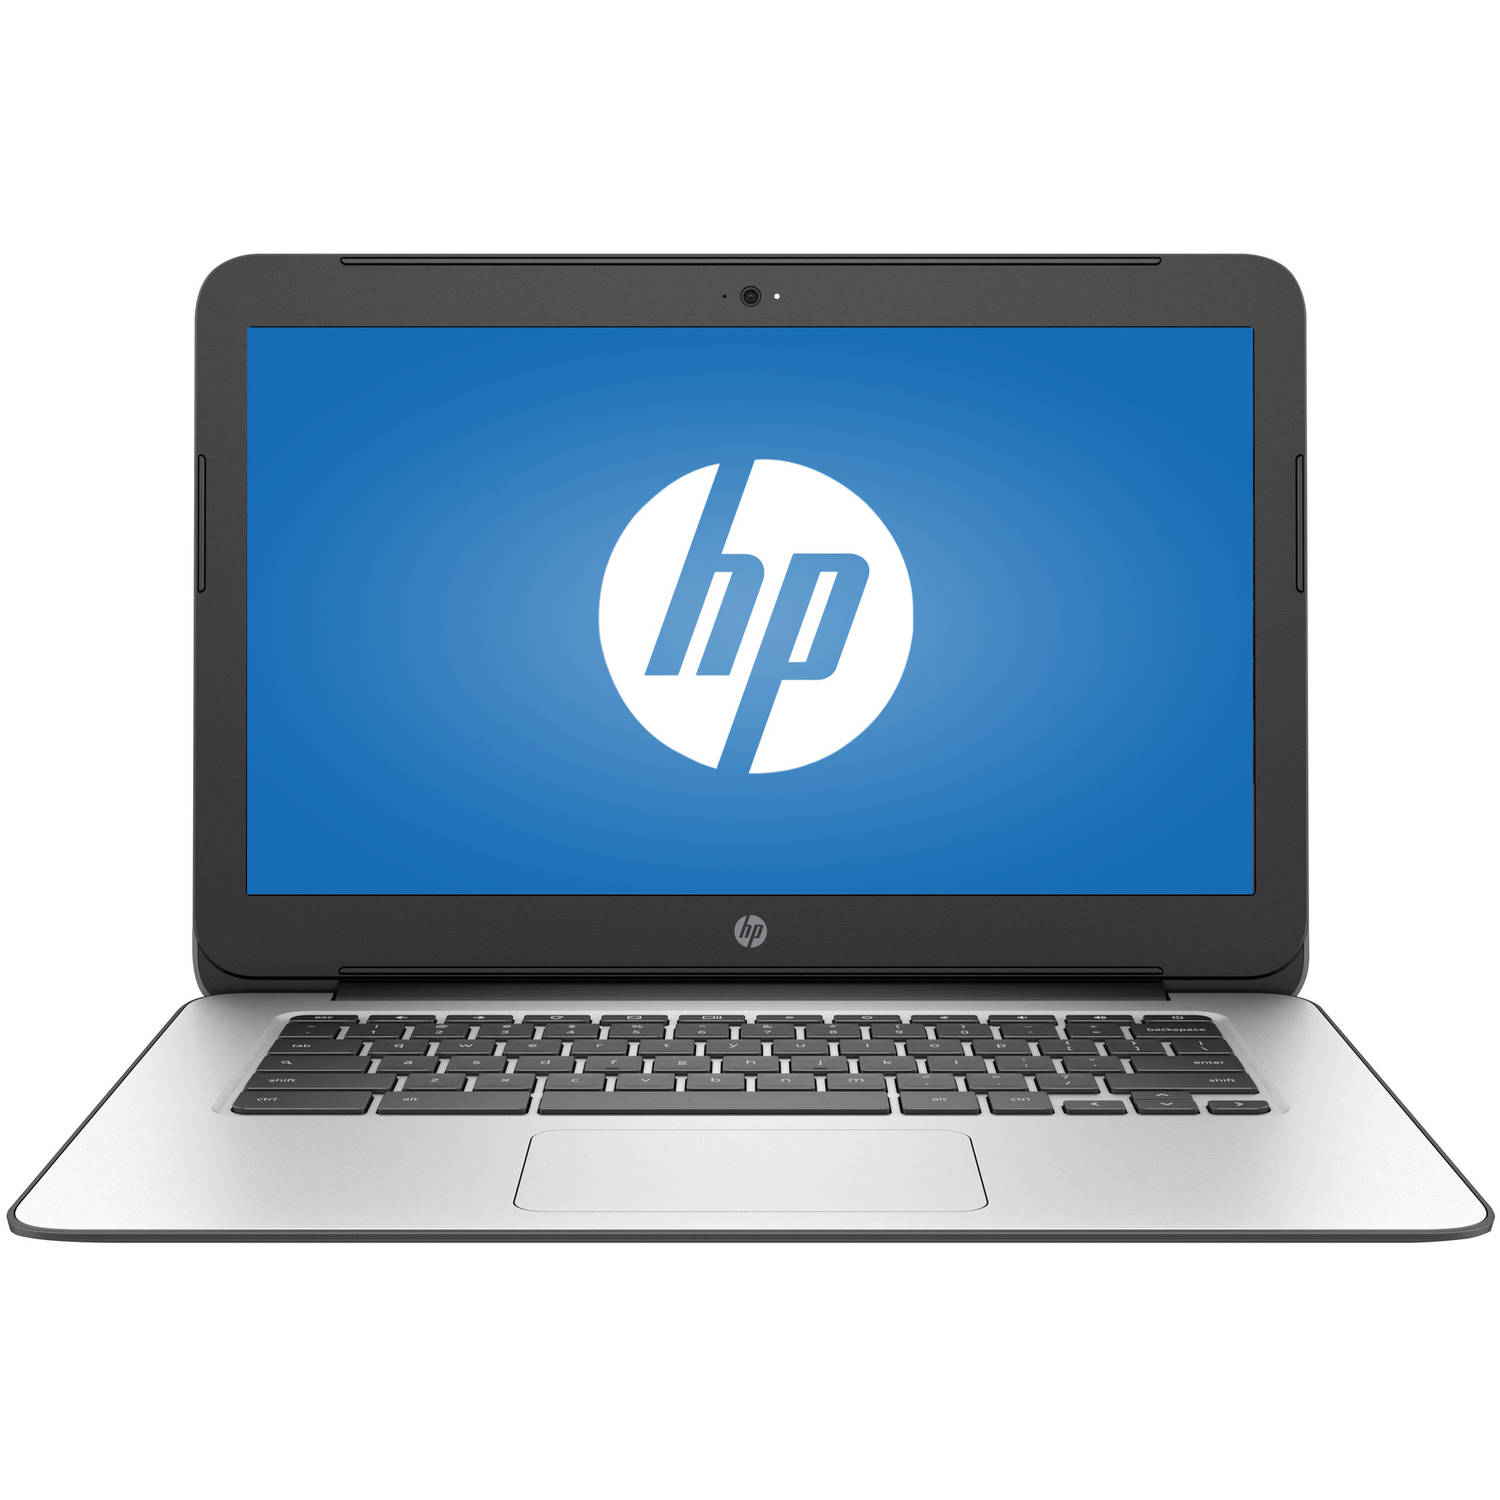 "HP SmartBuy Gray 14"" Chromebook PC with Intel Celeron N2840 Processor, 4GB Memory, 16GB eMMC Drive and Chrome"